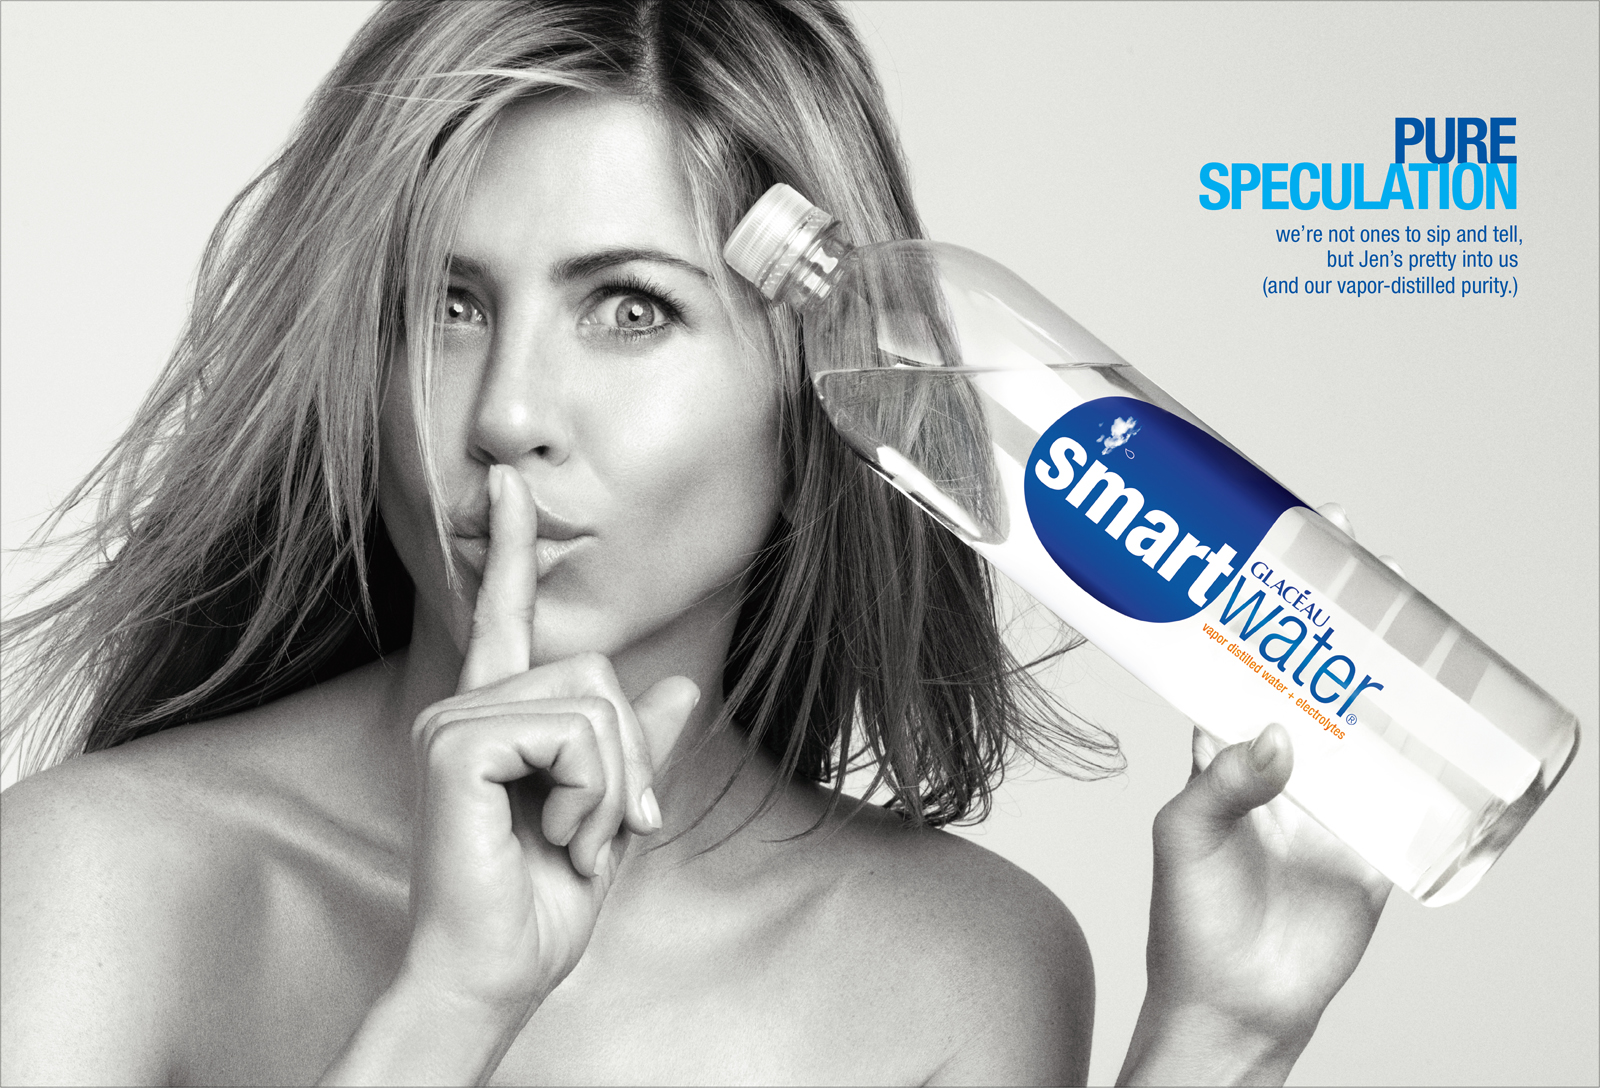 smartwater: jennifer aniston: print/ooh 2009